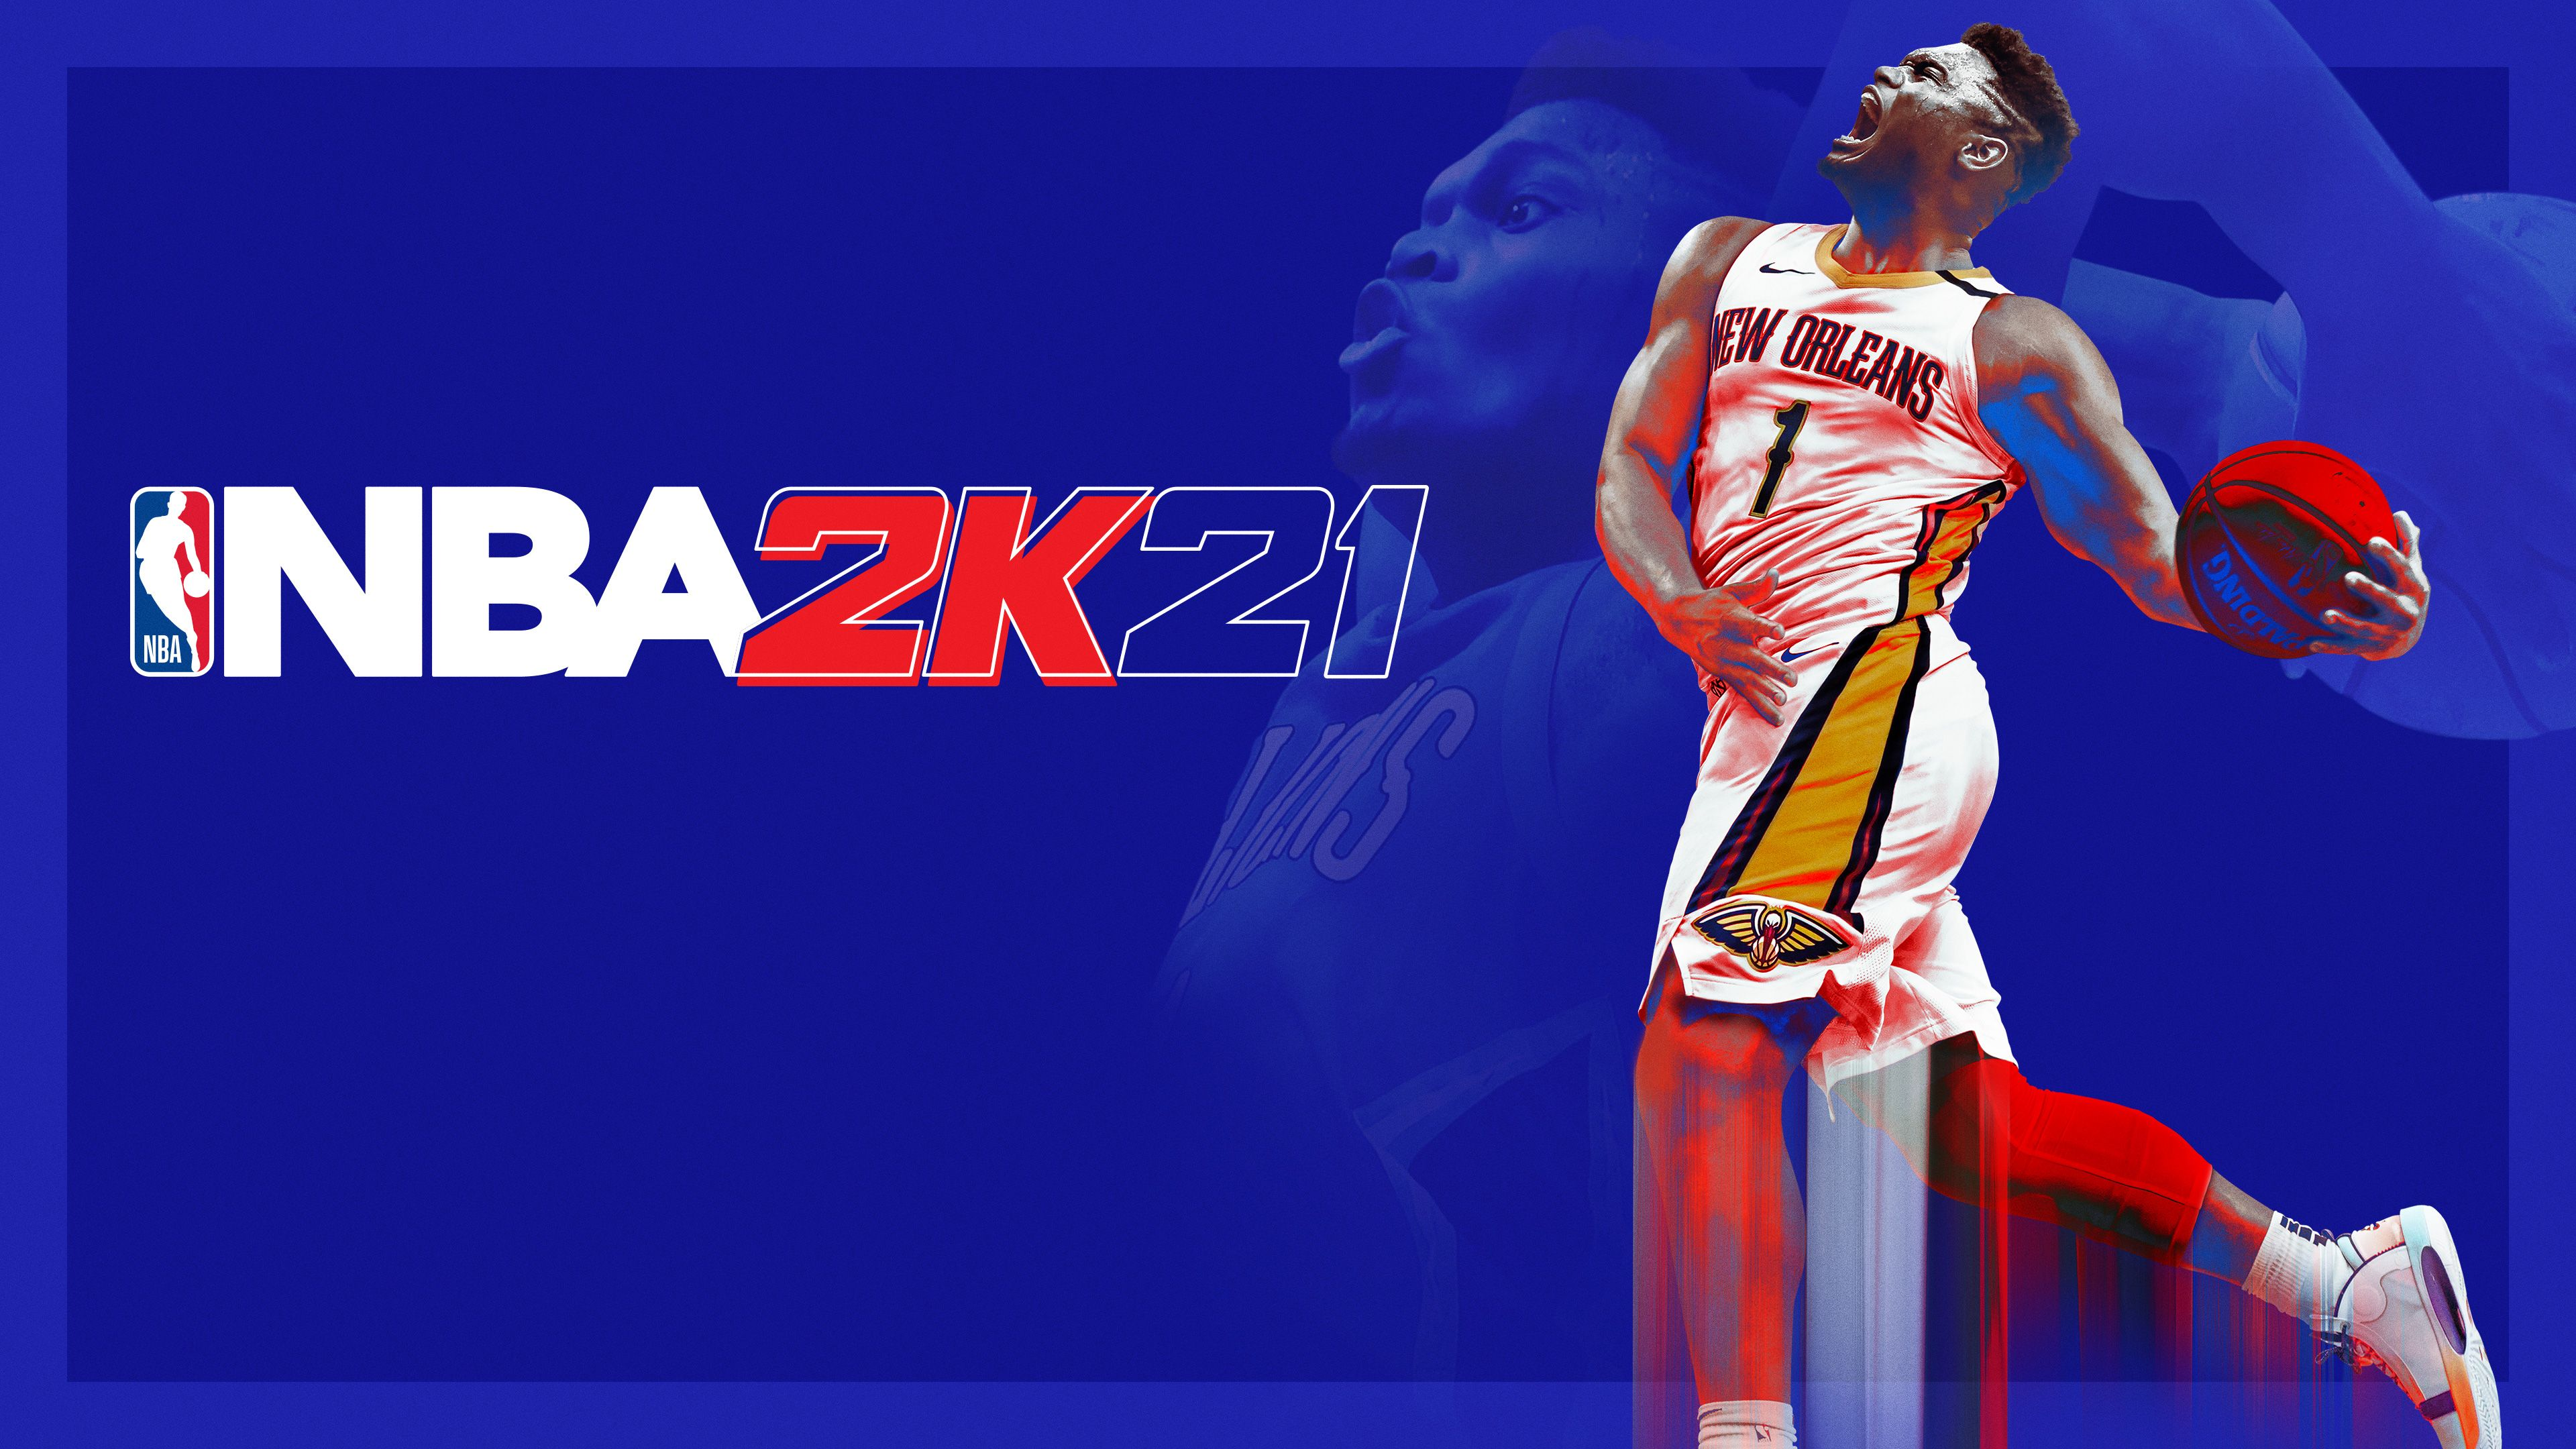 NBA 2K21 Next Generation Pre-Order